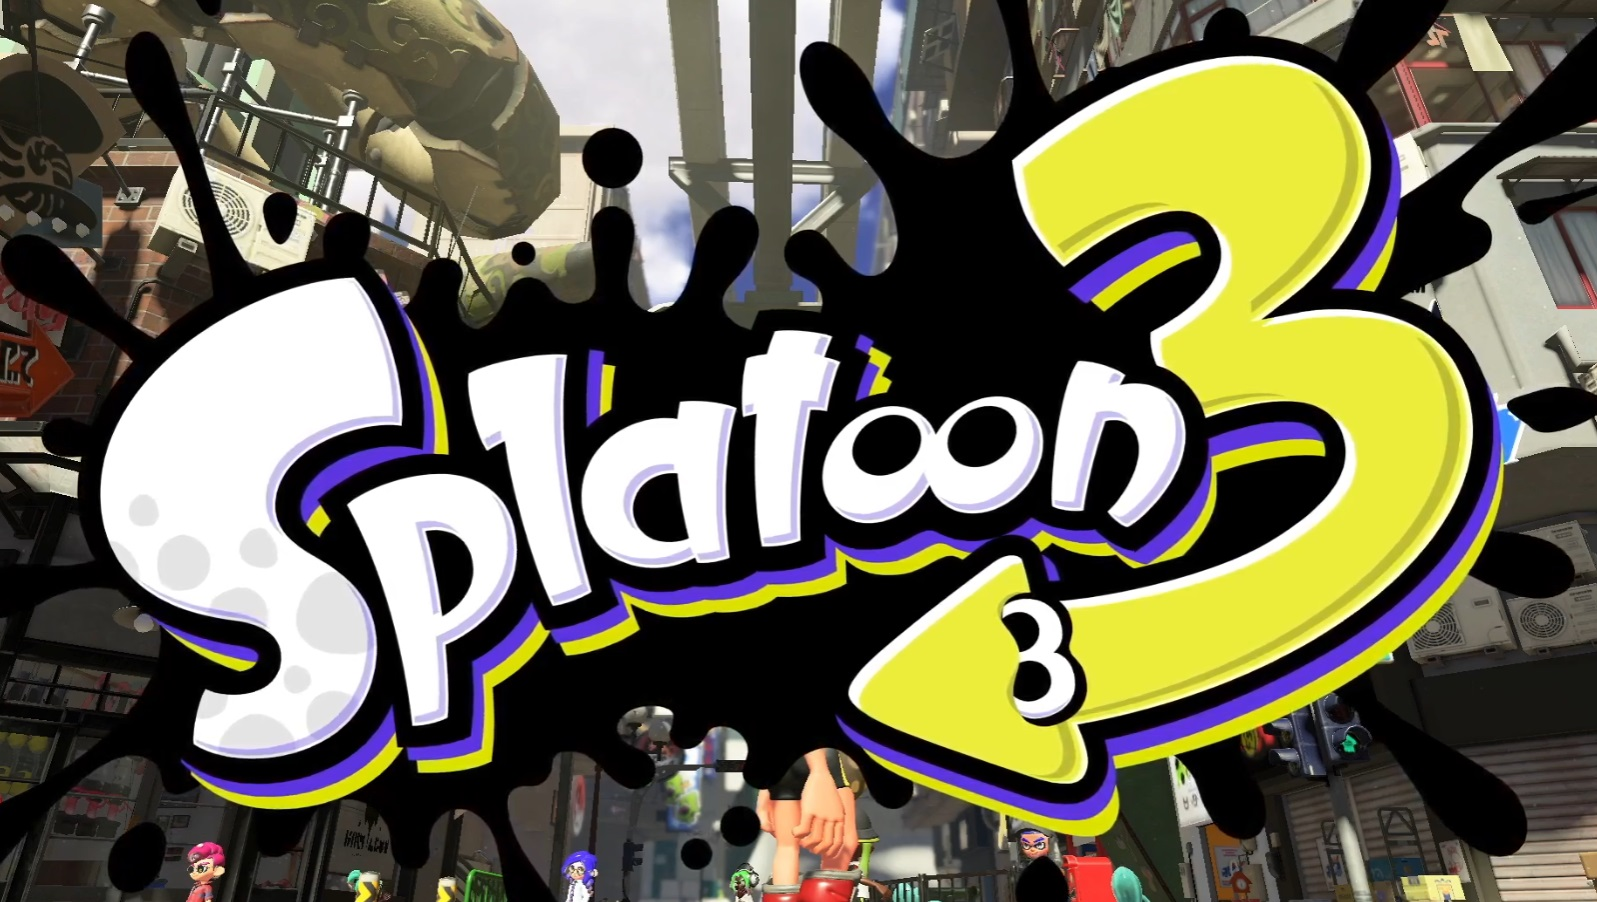 Today's Nintendo Direct 'one last thing' is Splatoon 3 screenshot